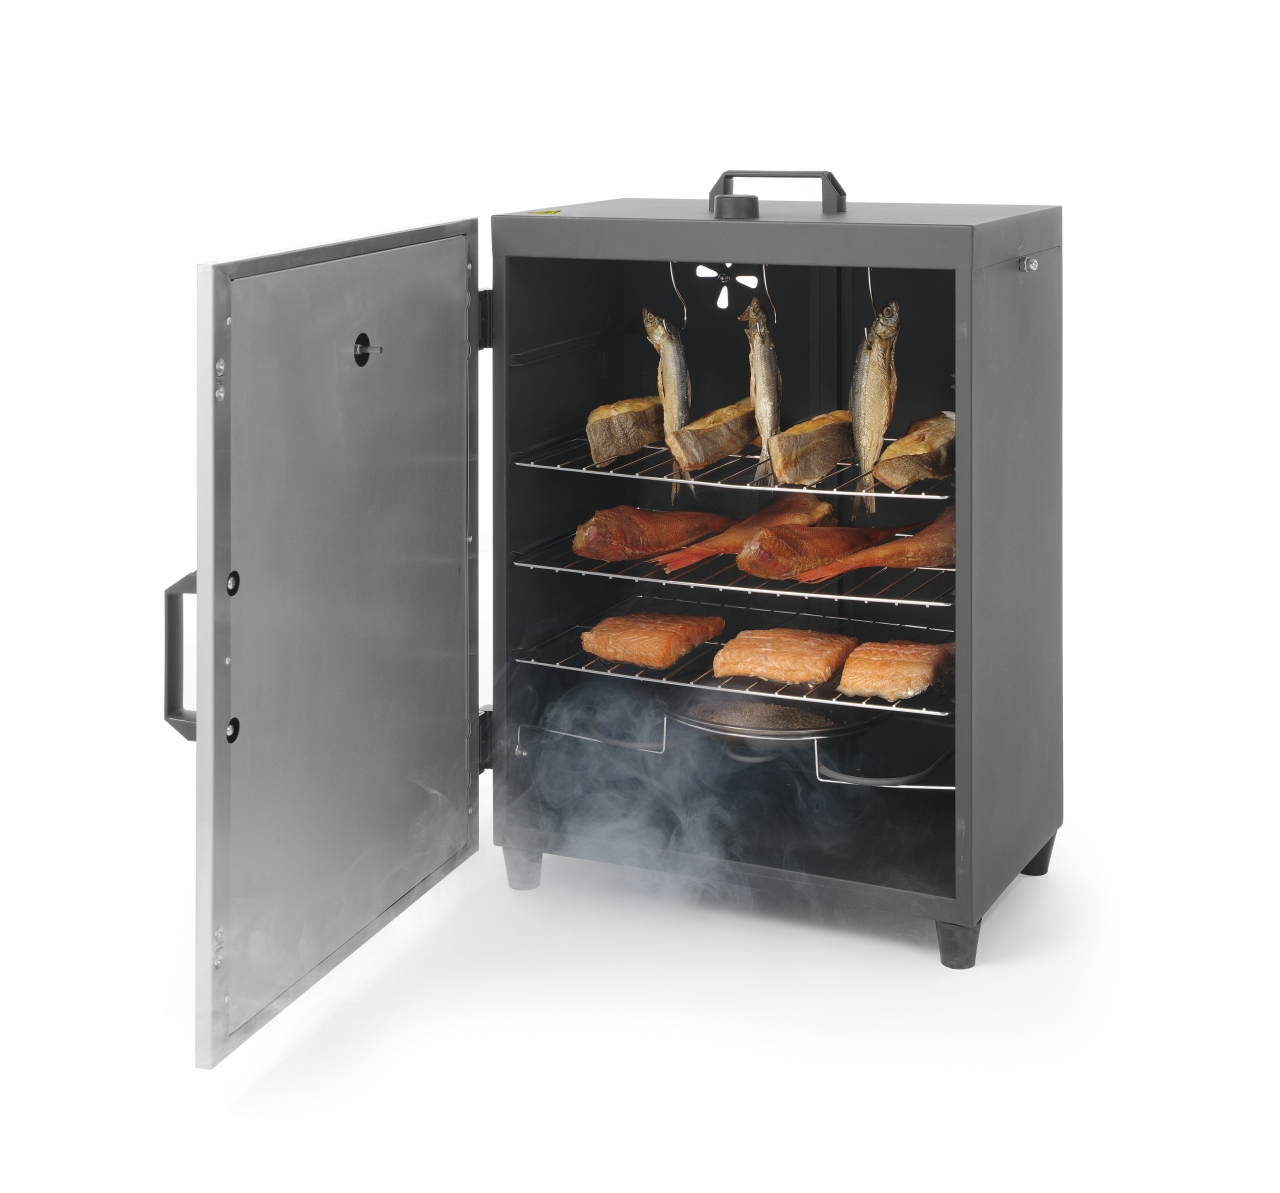 SMOKE OVEN ELECTRIC